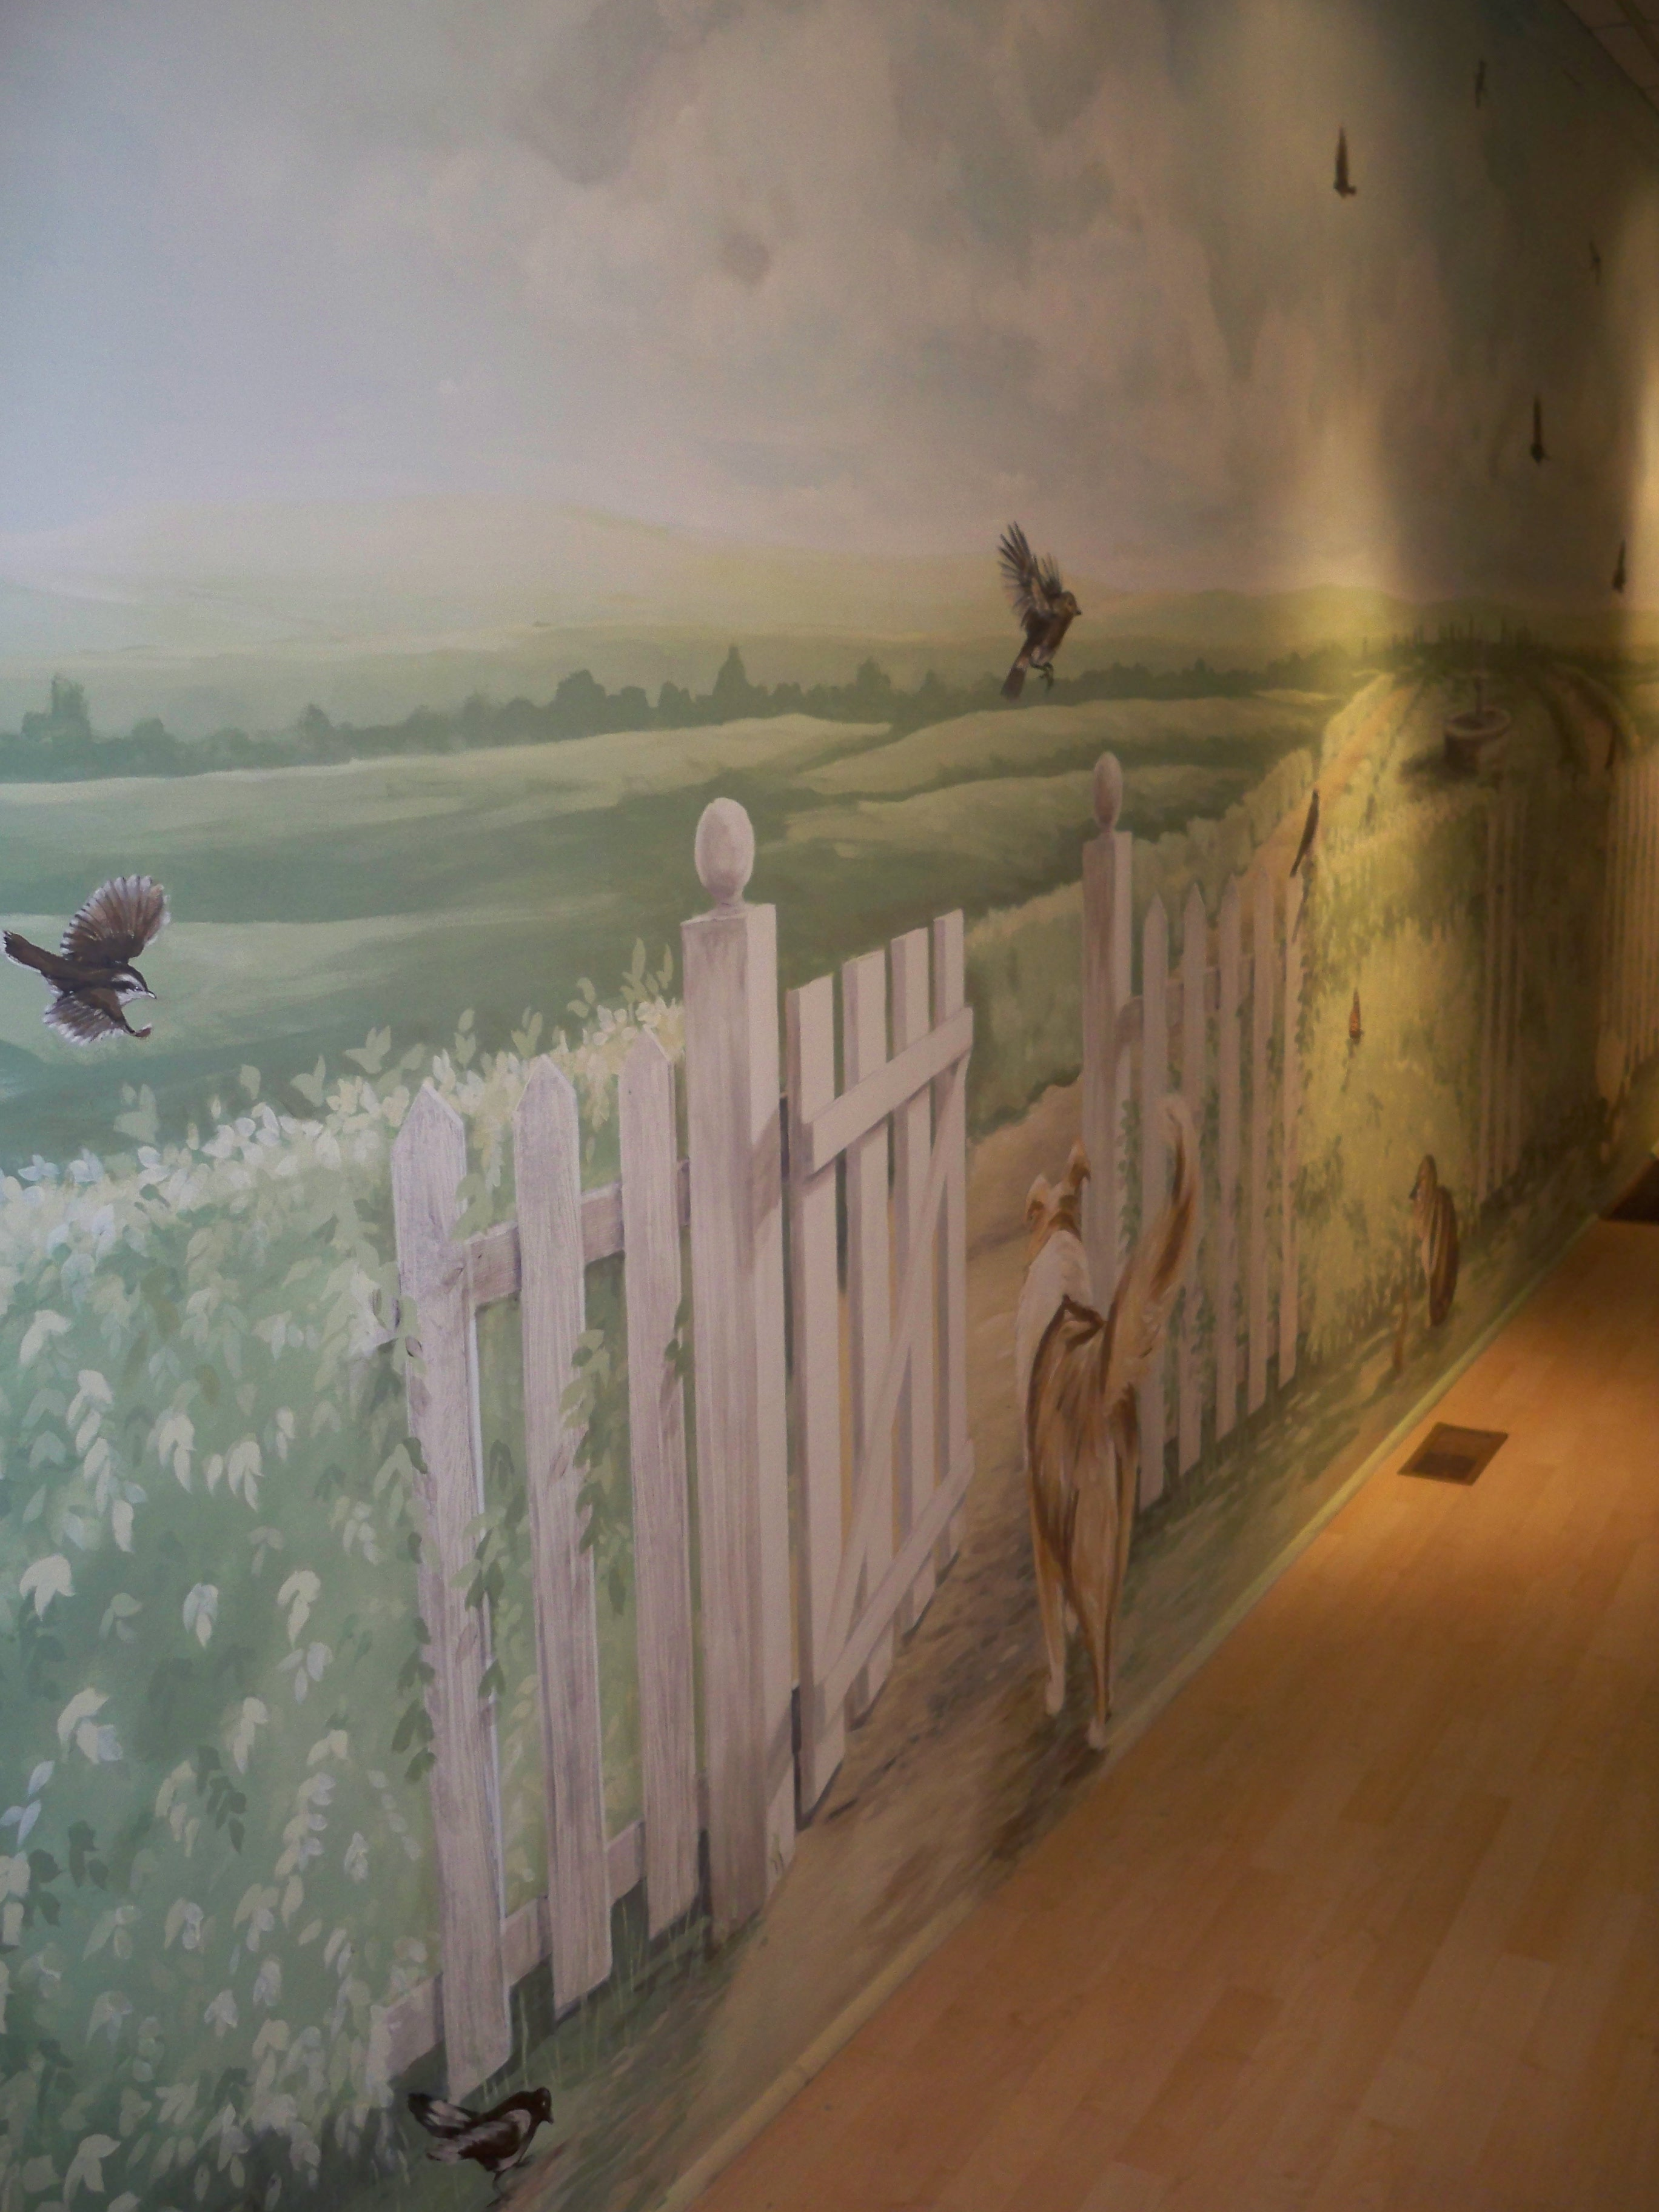 Murals By Marg Becoming Mural 4.JPG